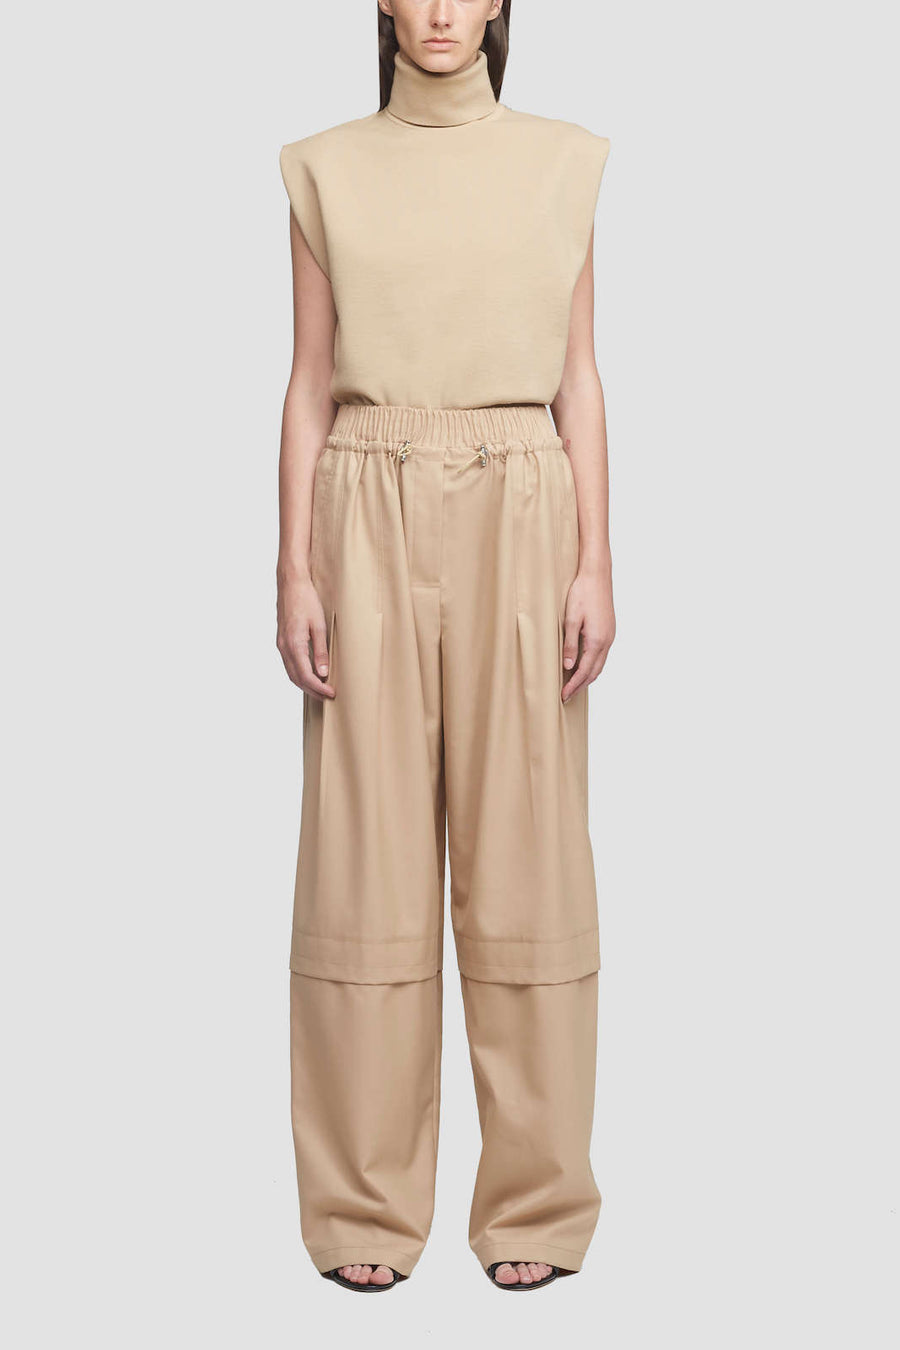 3.1 Phillip Lim Wool Serge Trouser in Fawn from The New Trend